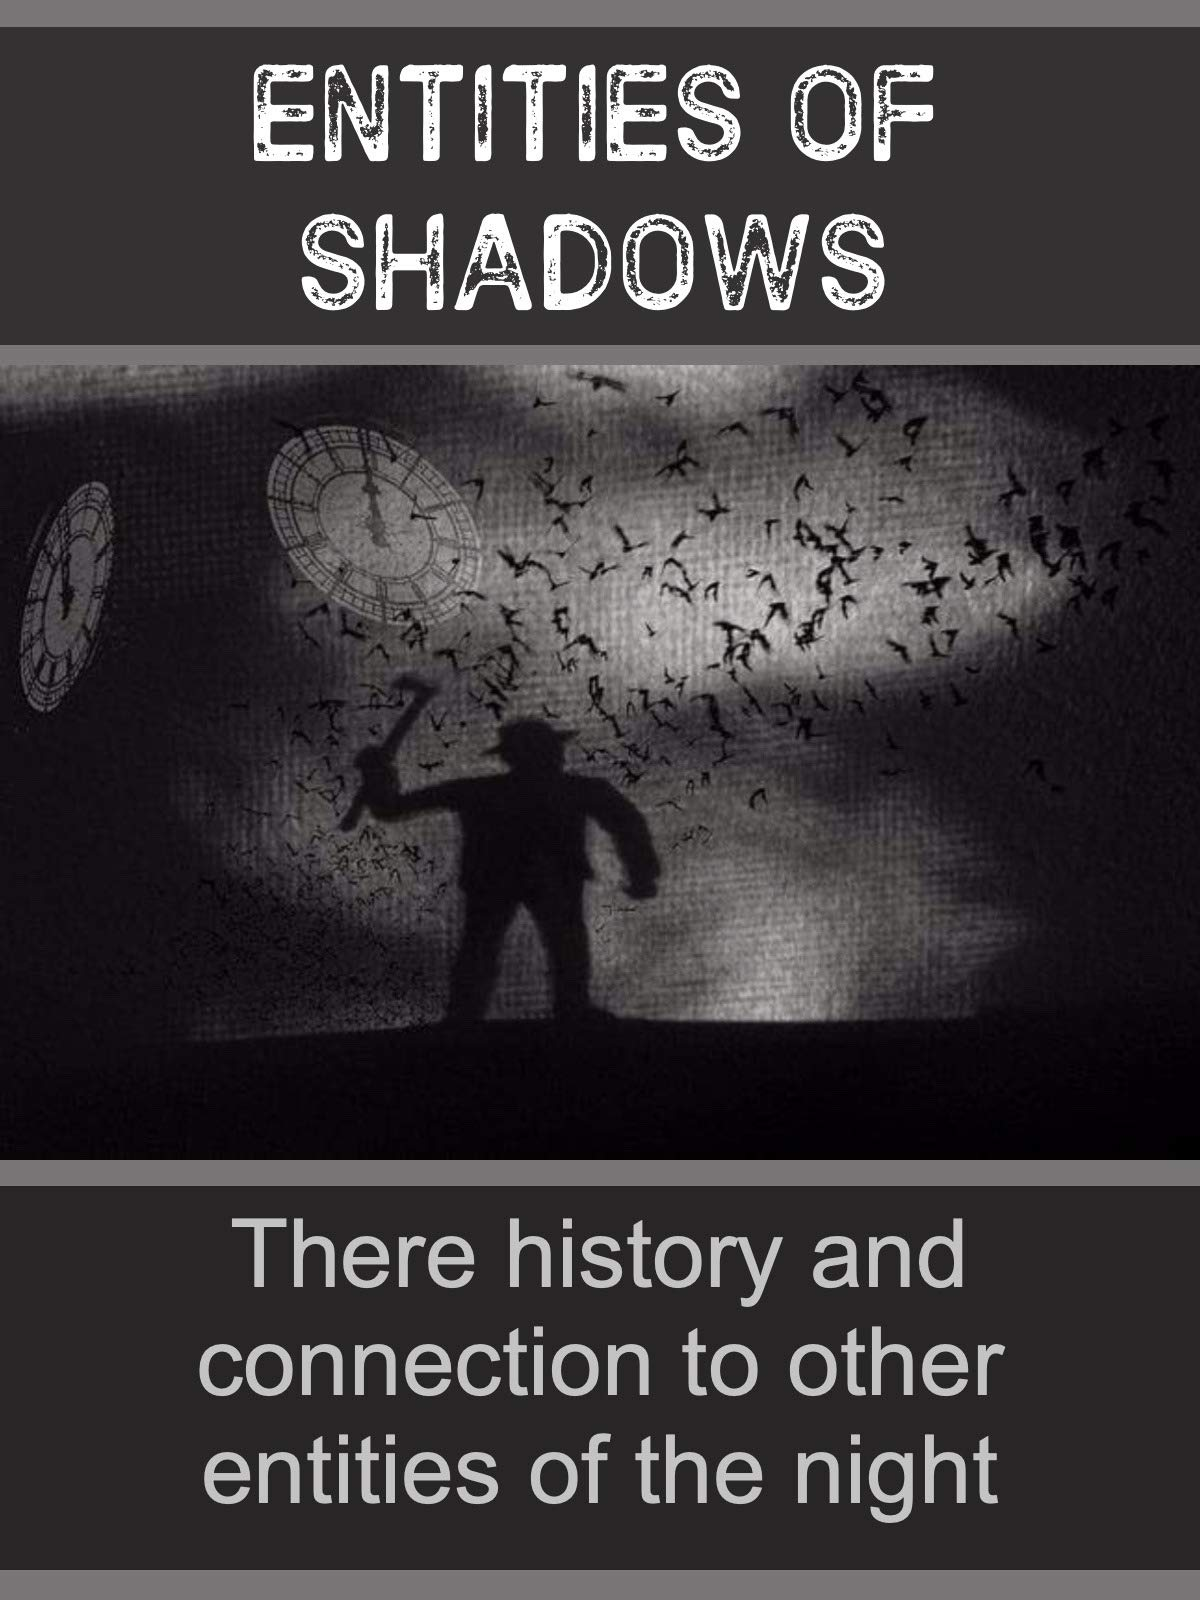 Entities of shadows: Their history and connection to other entities of the night